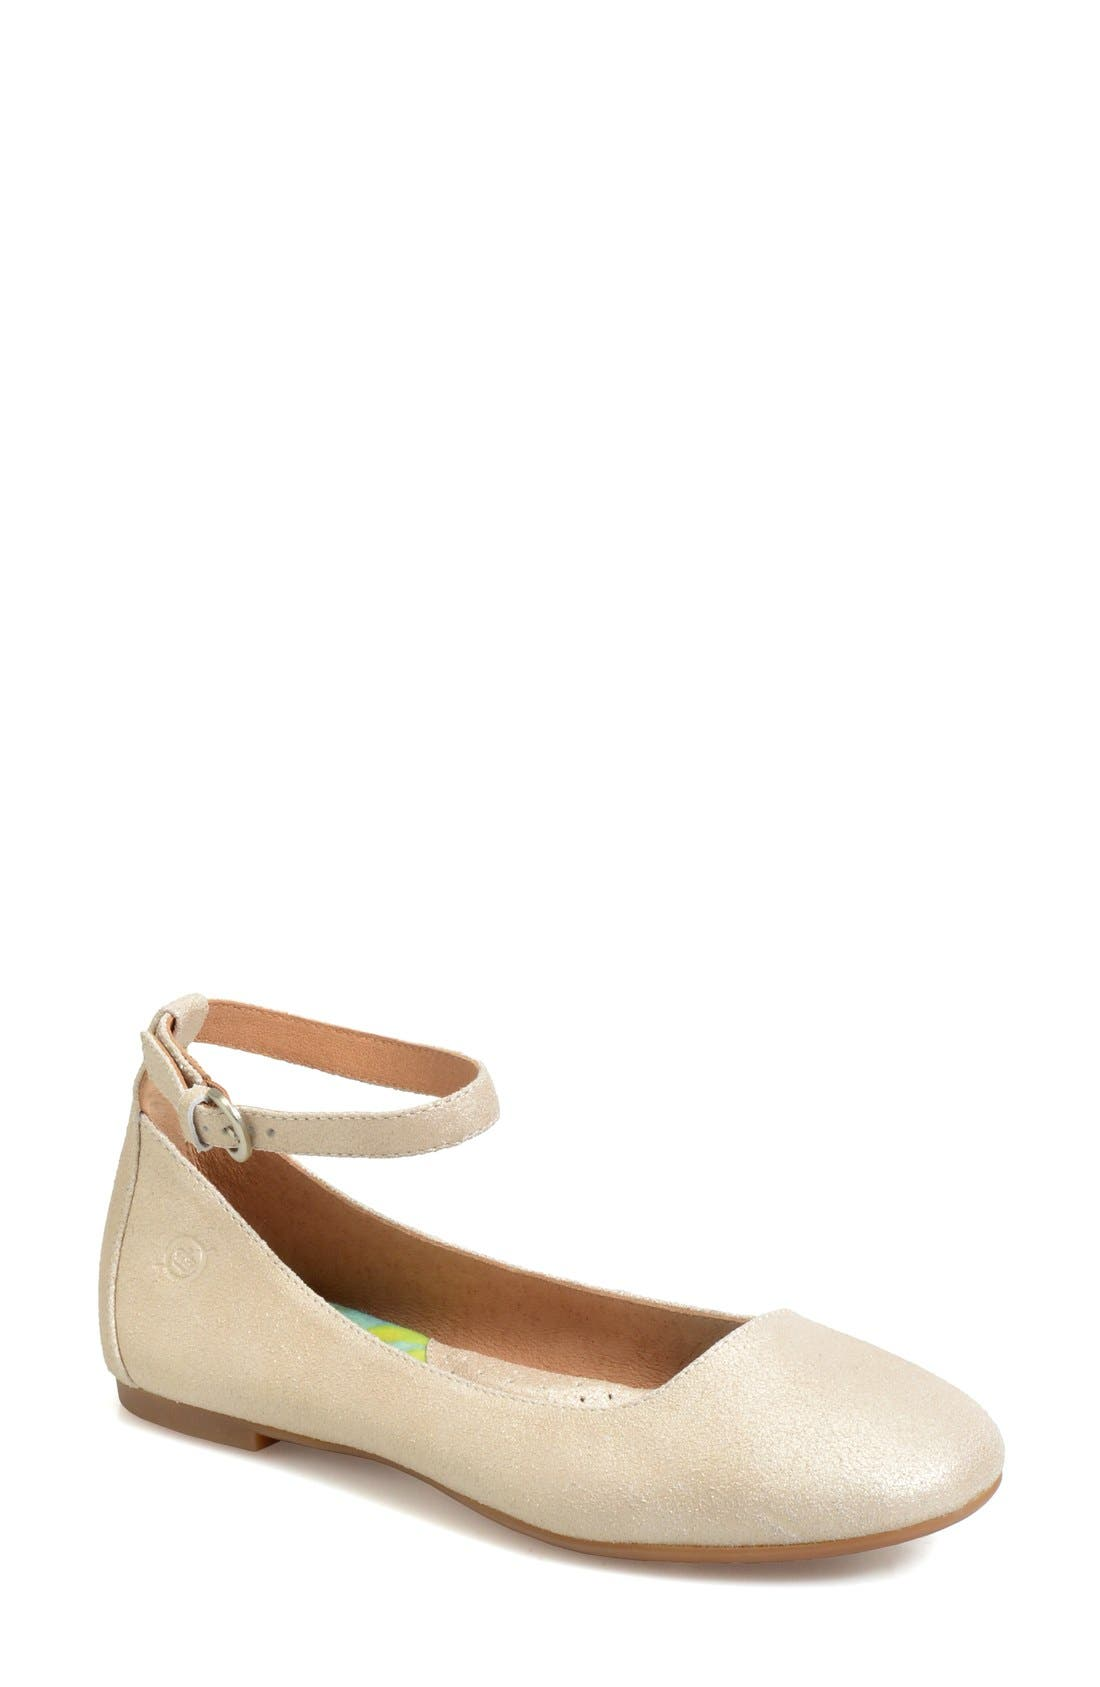 Alternate Image 1 Selected - Børn 'Remy' Ankle Strap Flat (Women)